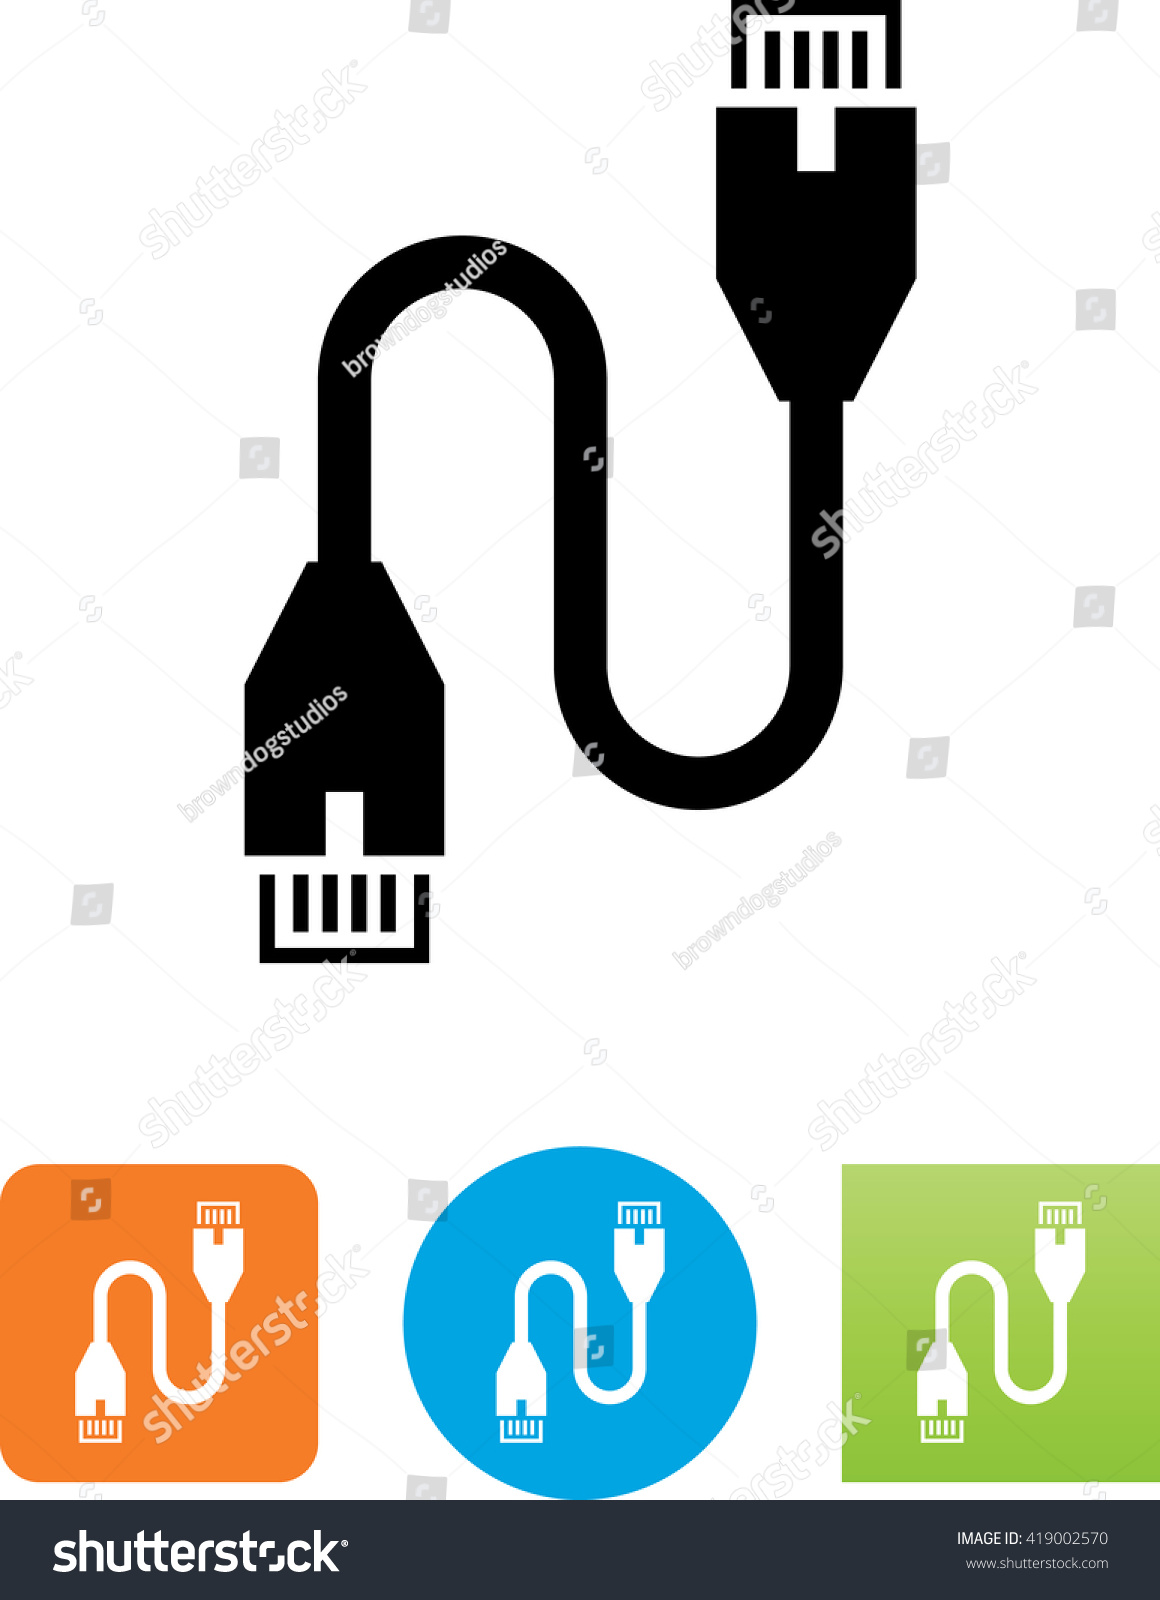 Cat 5 Ethernet Cable Icon Stock Vector (2018) 419002570 - Shutterstock